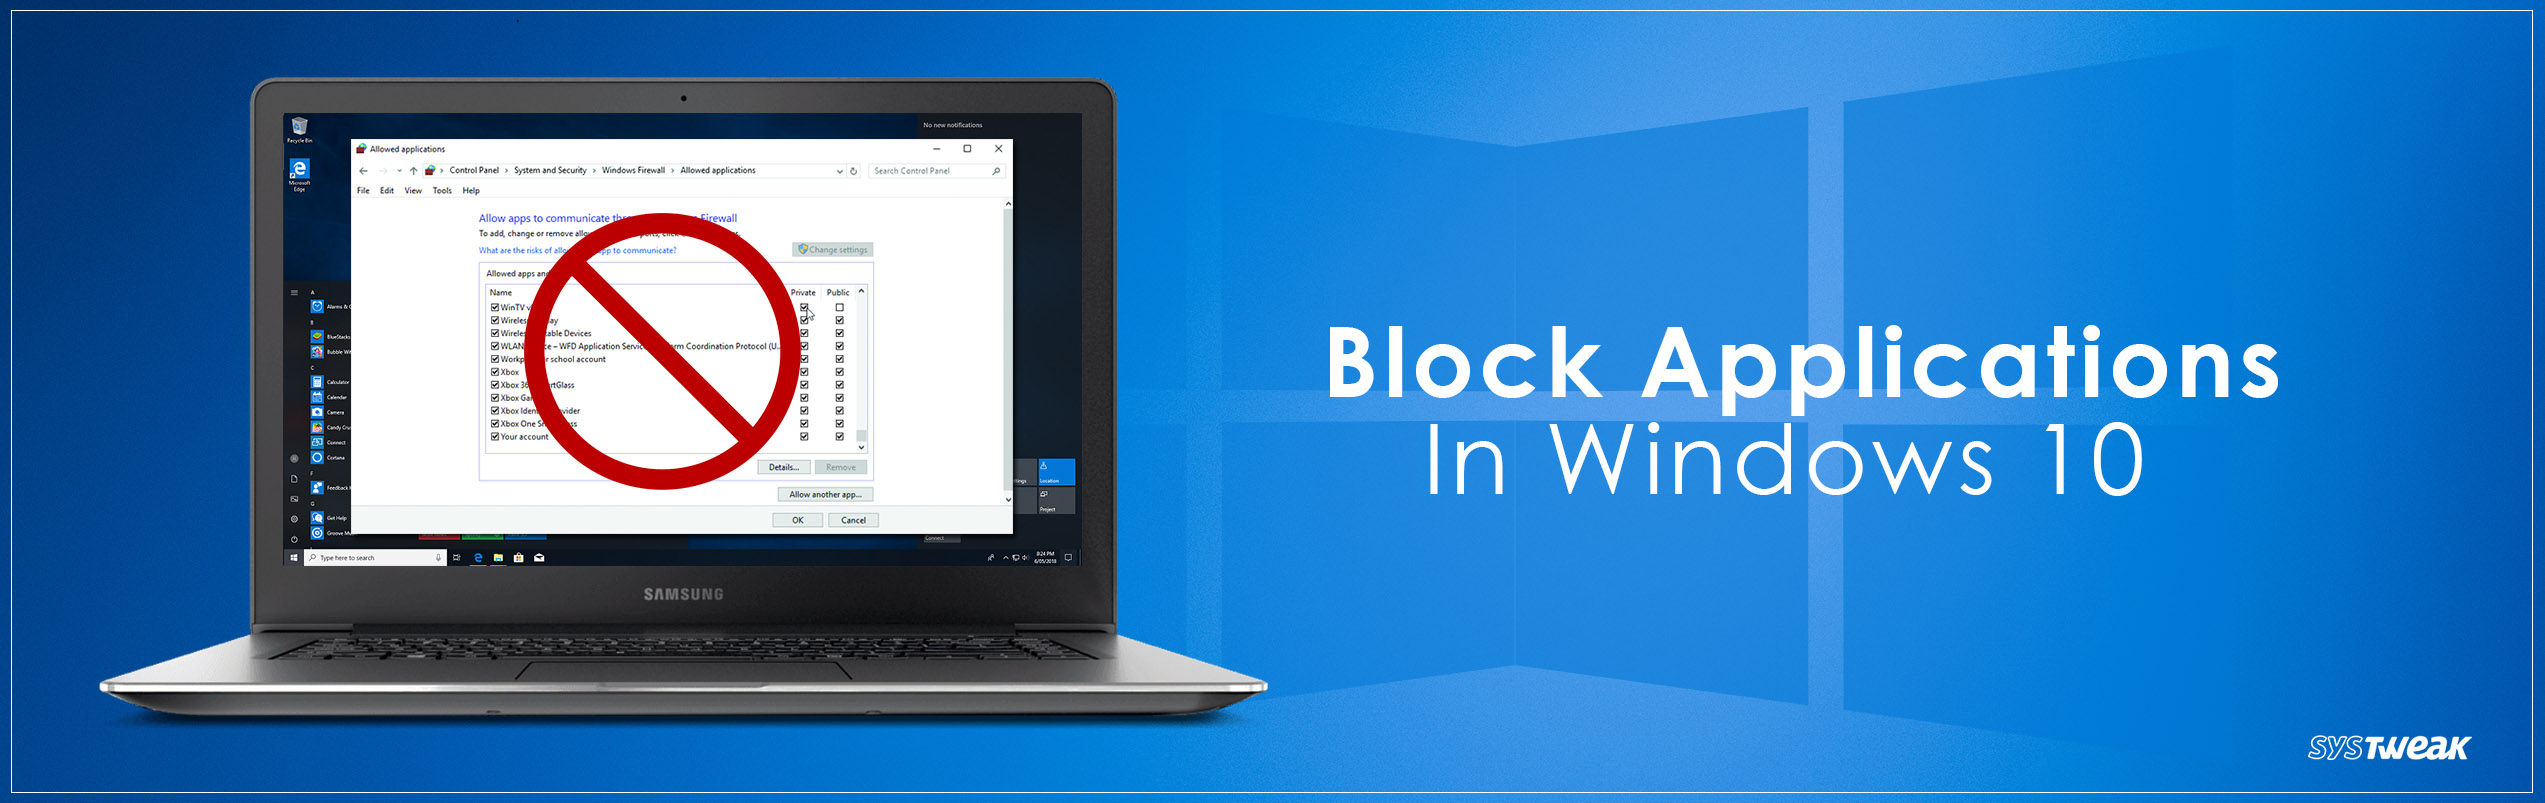 Ways To Block Applications In Windows 10